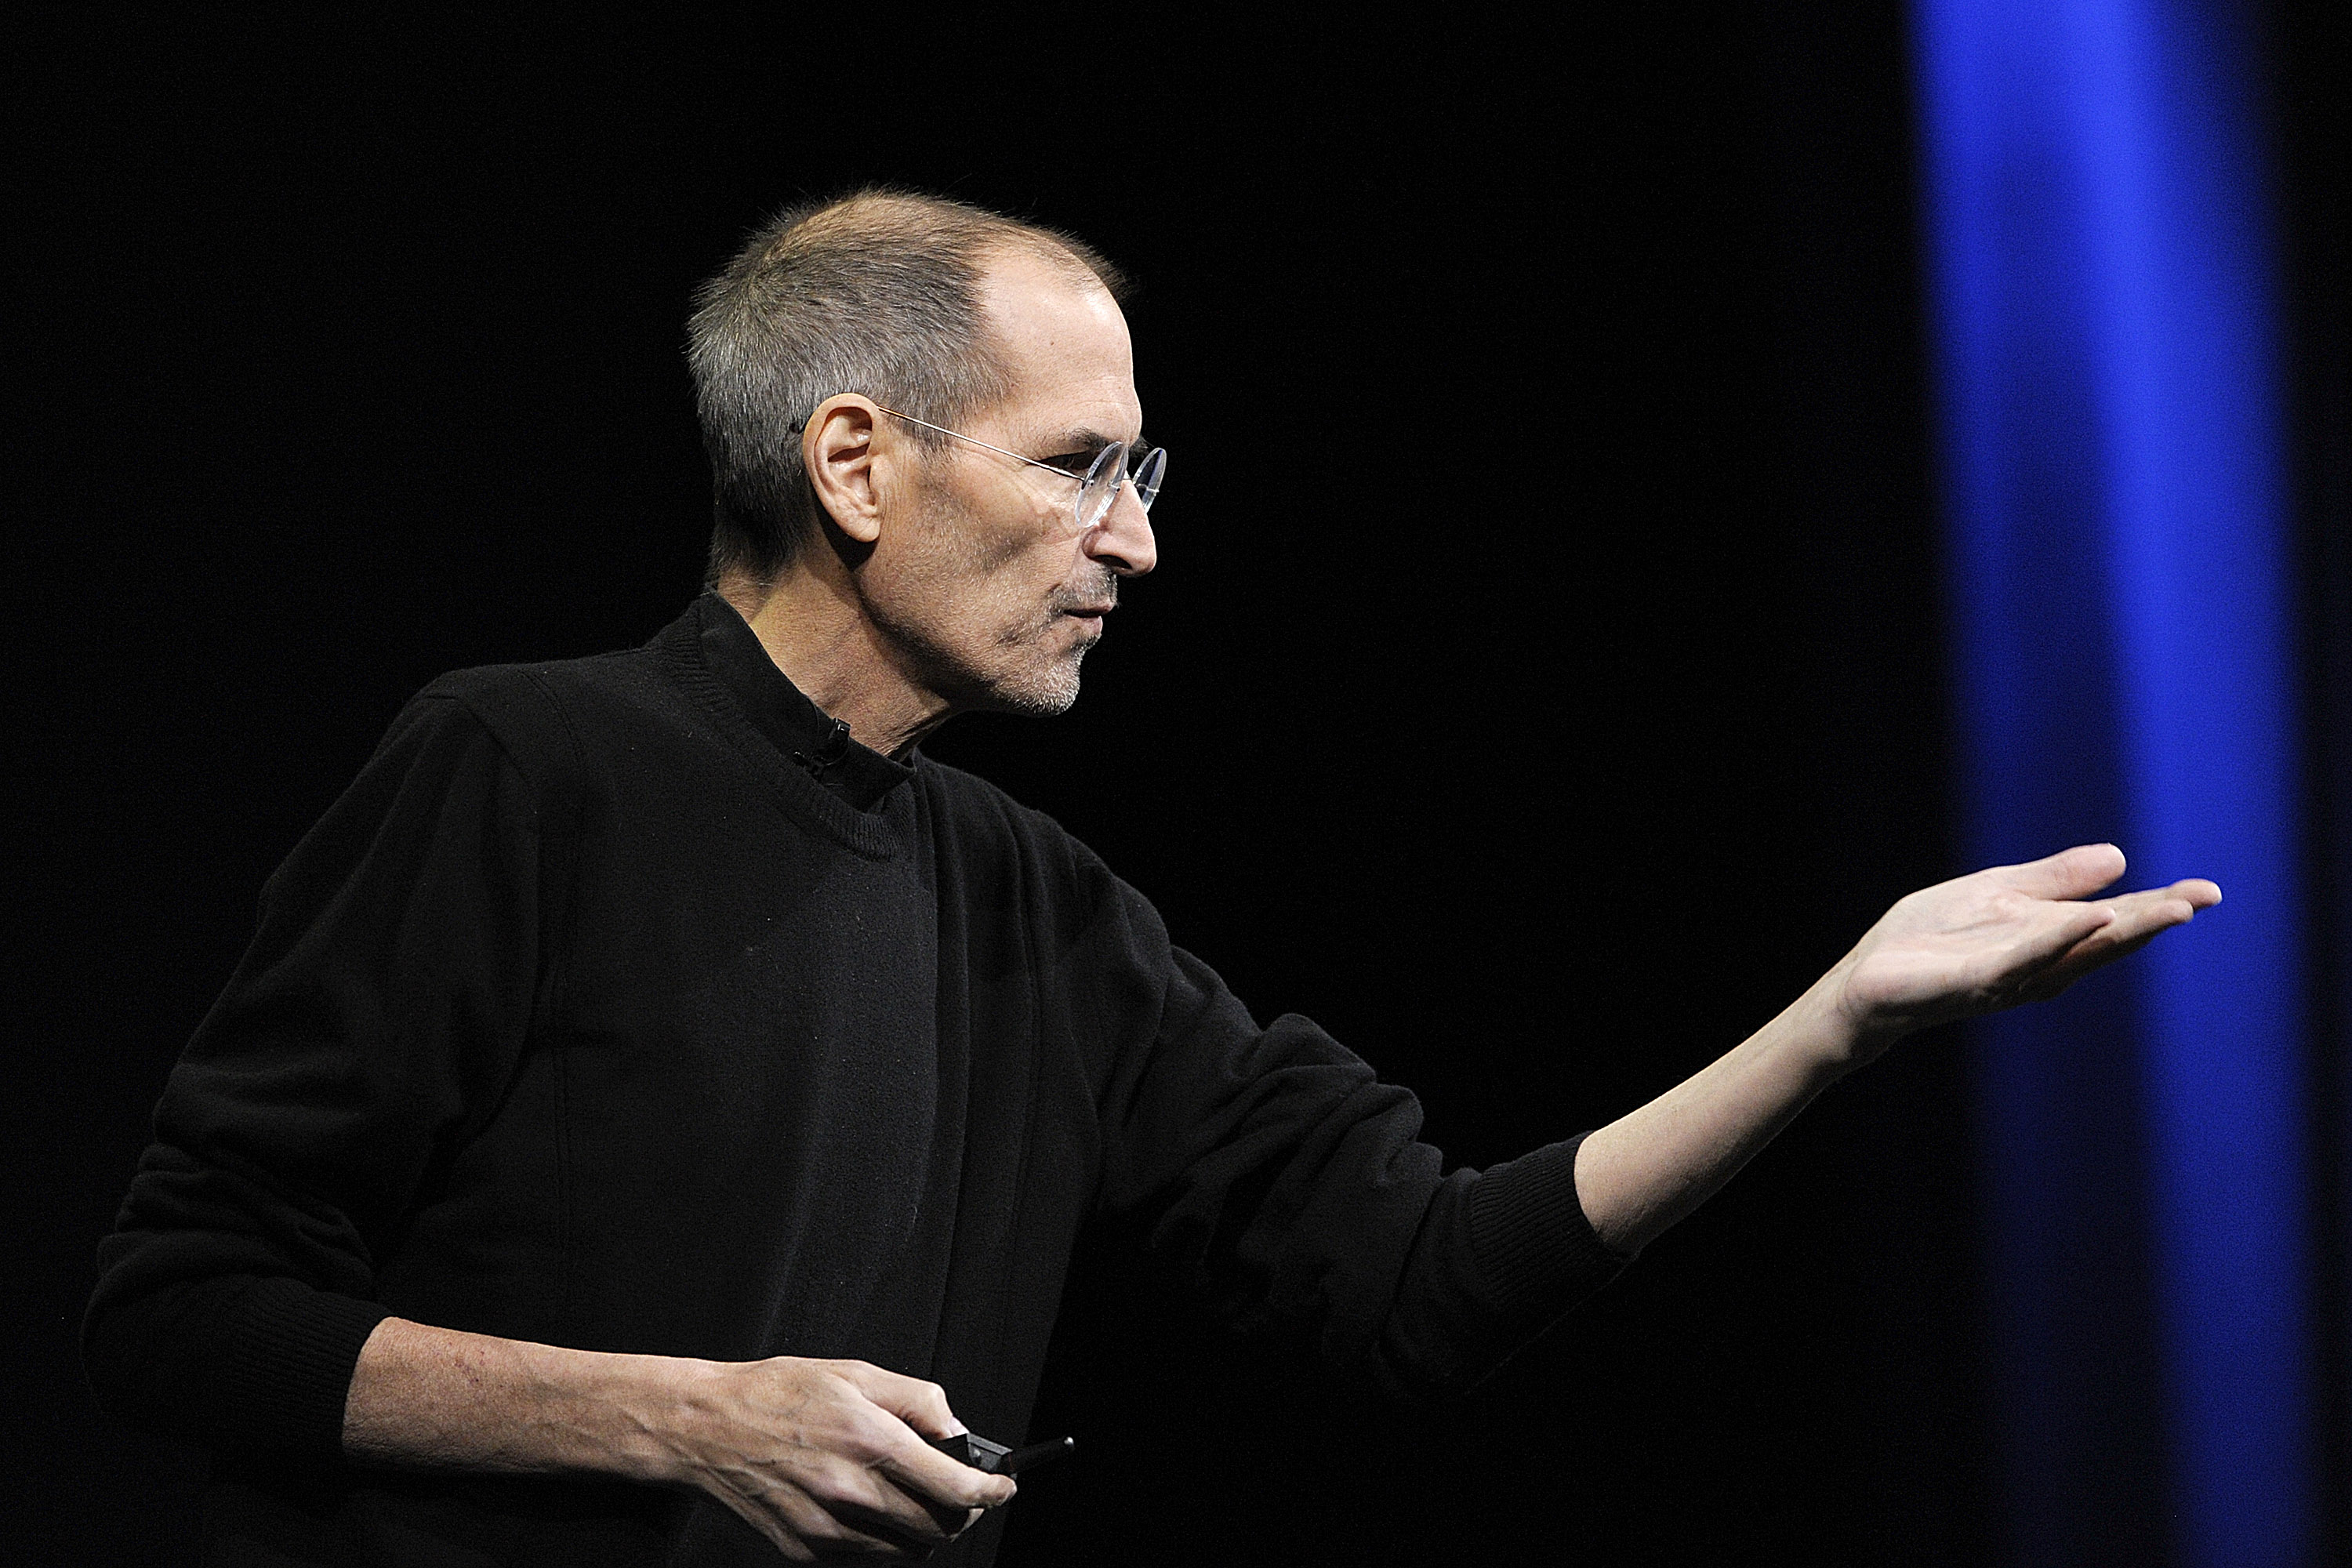 Steve Jobs, former chief executive officer of Apple Inc., unveils the iCloud storage system at the Apple Worldwide Developers Conference 2011.